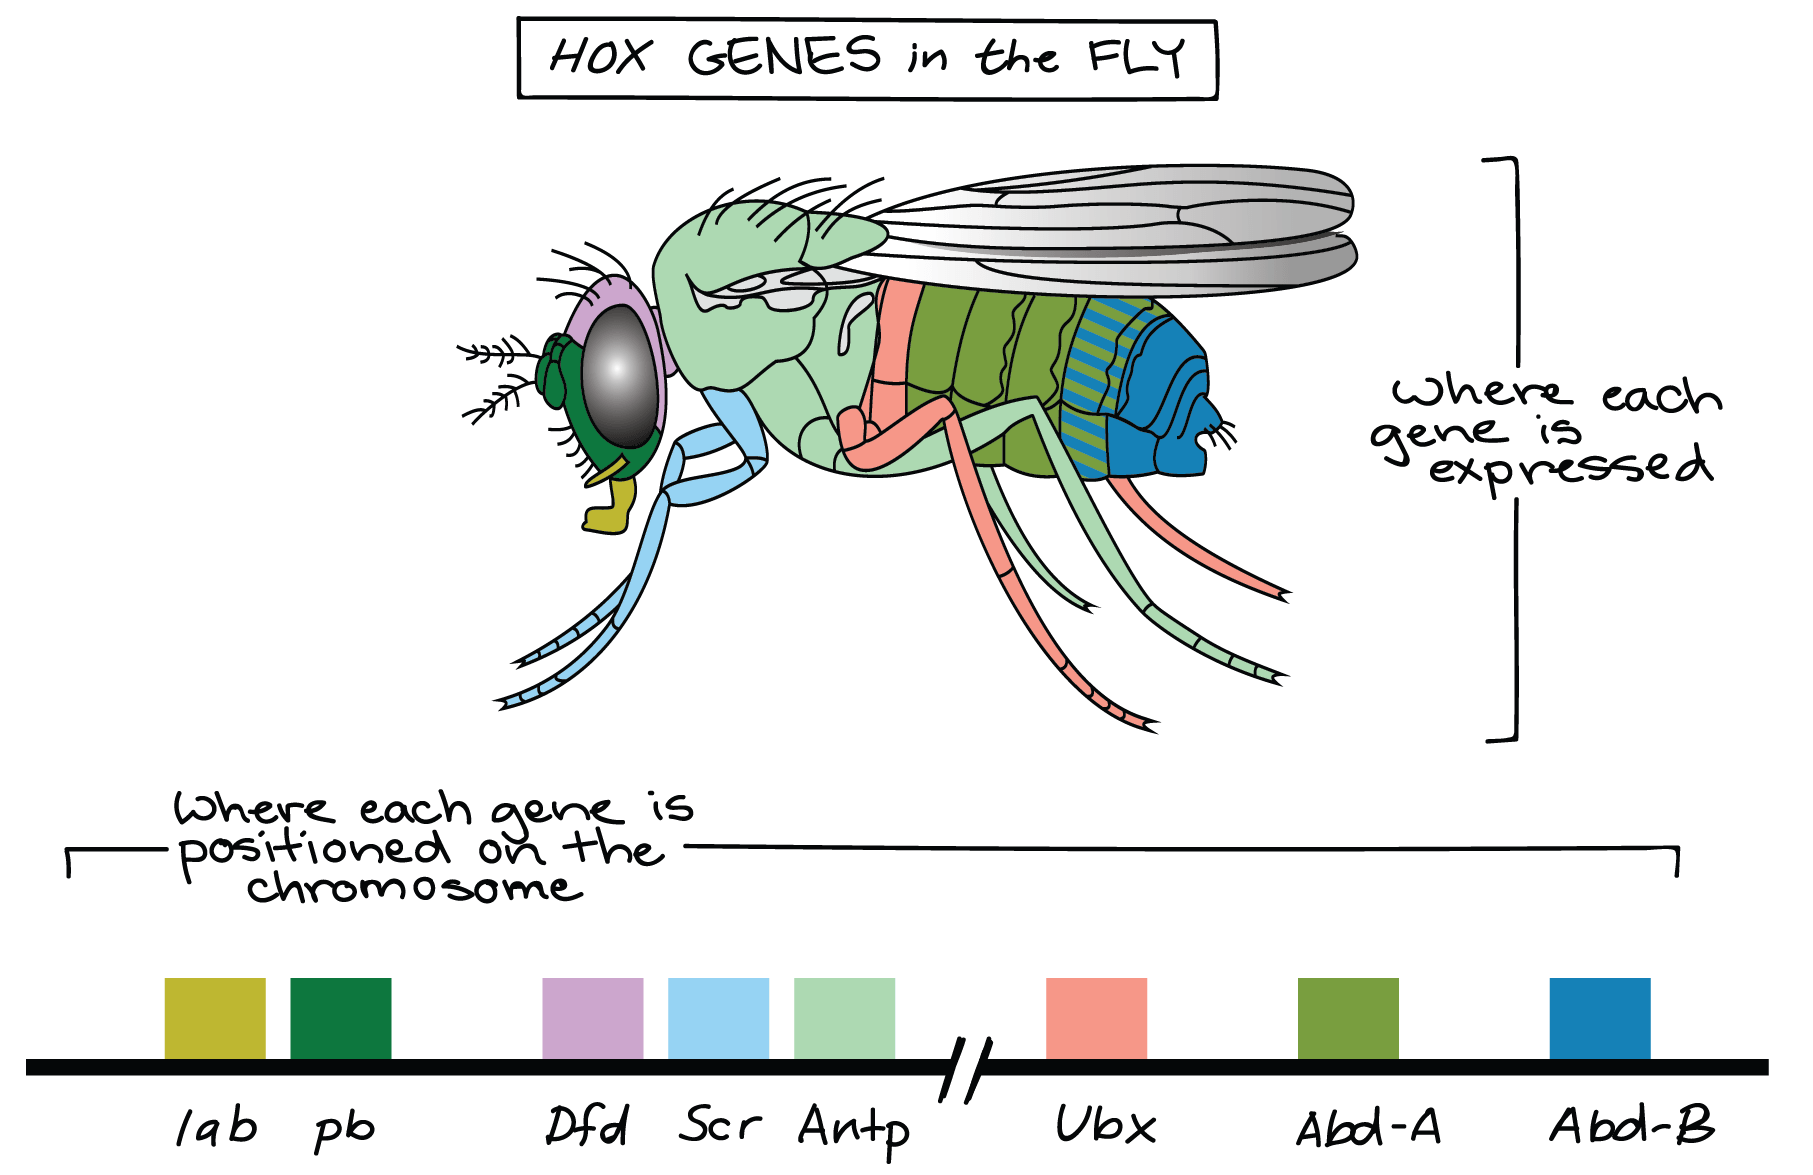 hight resolution of  that these two clusters of genes are separated by a long intervening region that s not shown image credit modified from hox genes of fruit fly